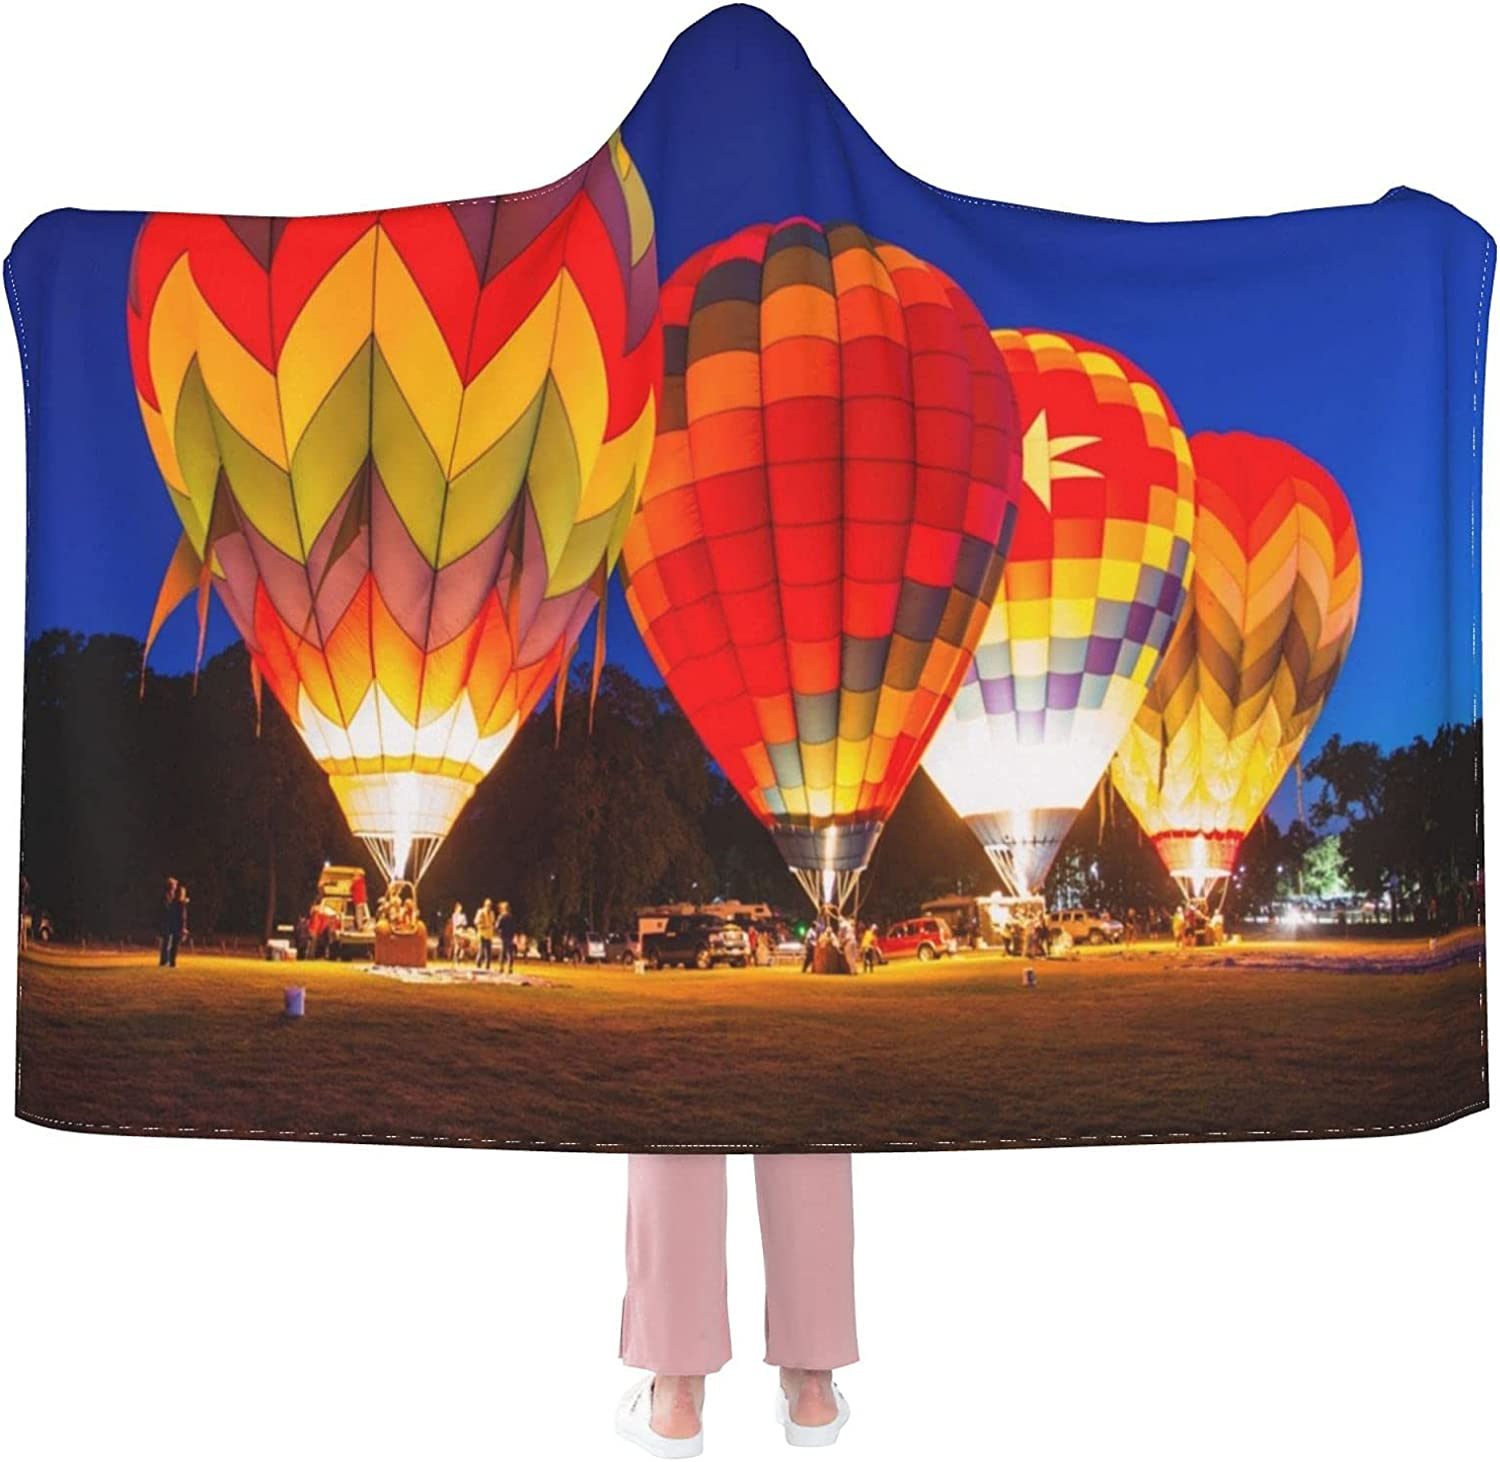 Hot Air Balloons Glowing at Flannel Weara Wearable Blanket Baltimore Mall Max 59% OFF Night